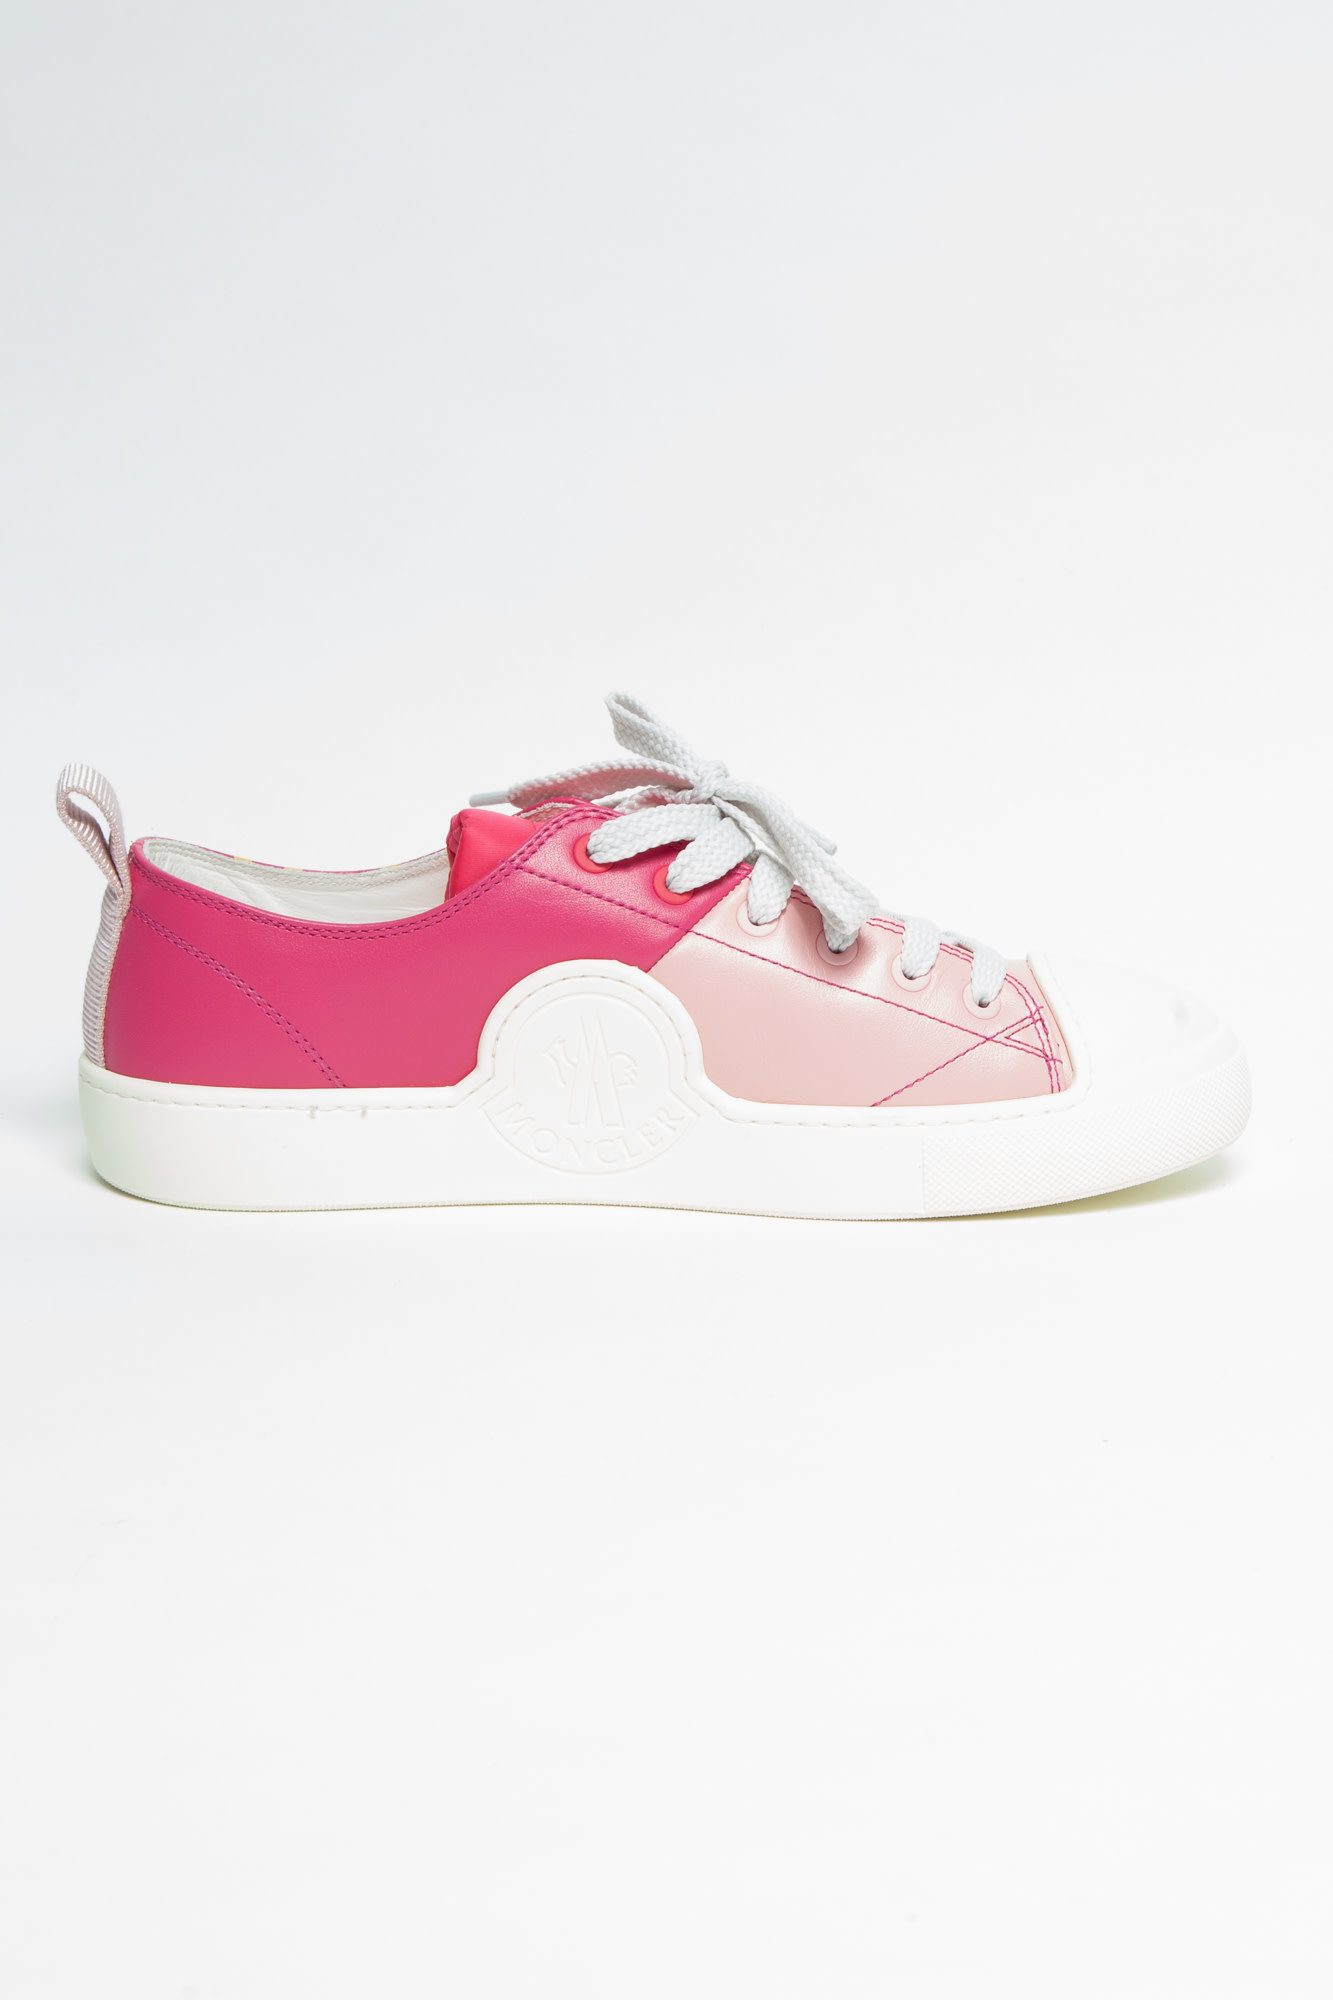 """Moncler """"MONCLER"""" PINK AND WHITE SNEAKERS - NEW"""